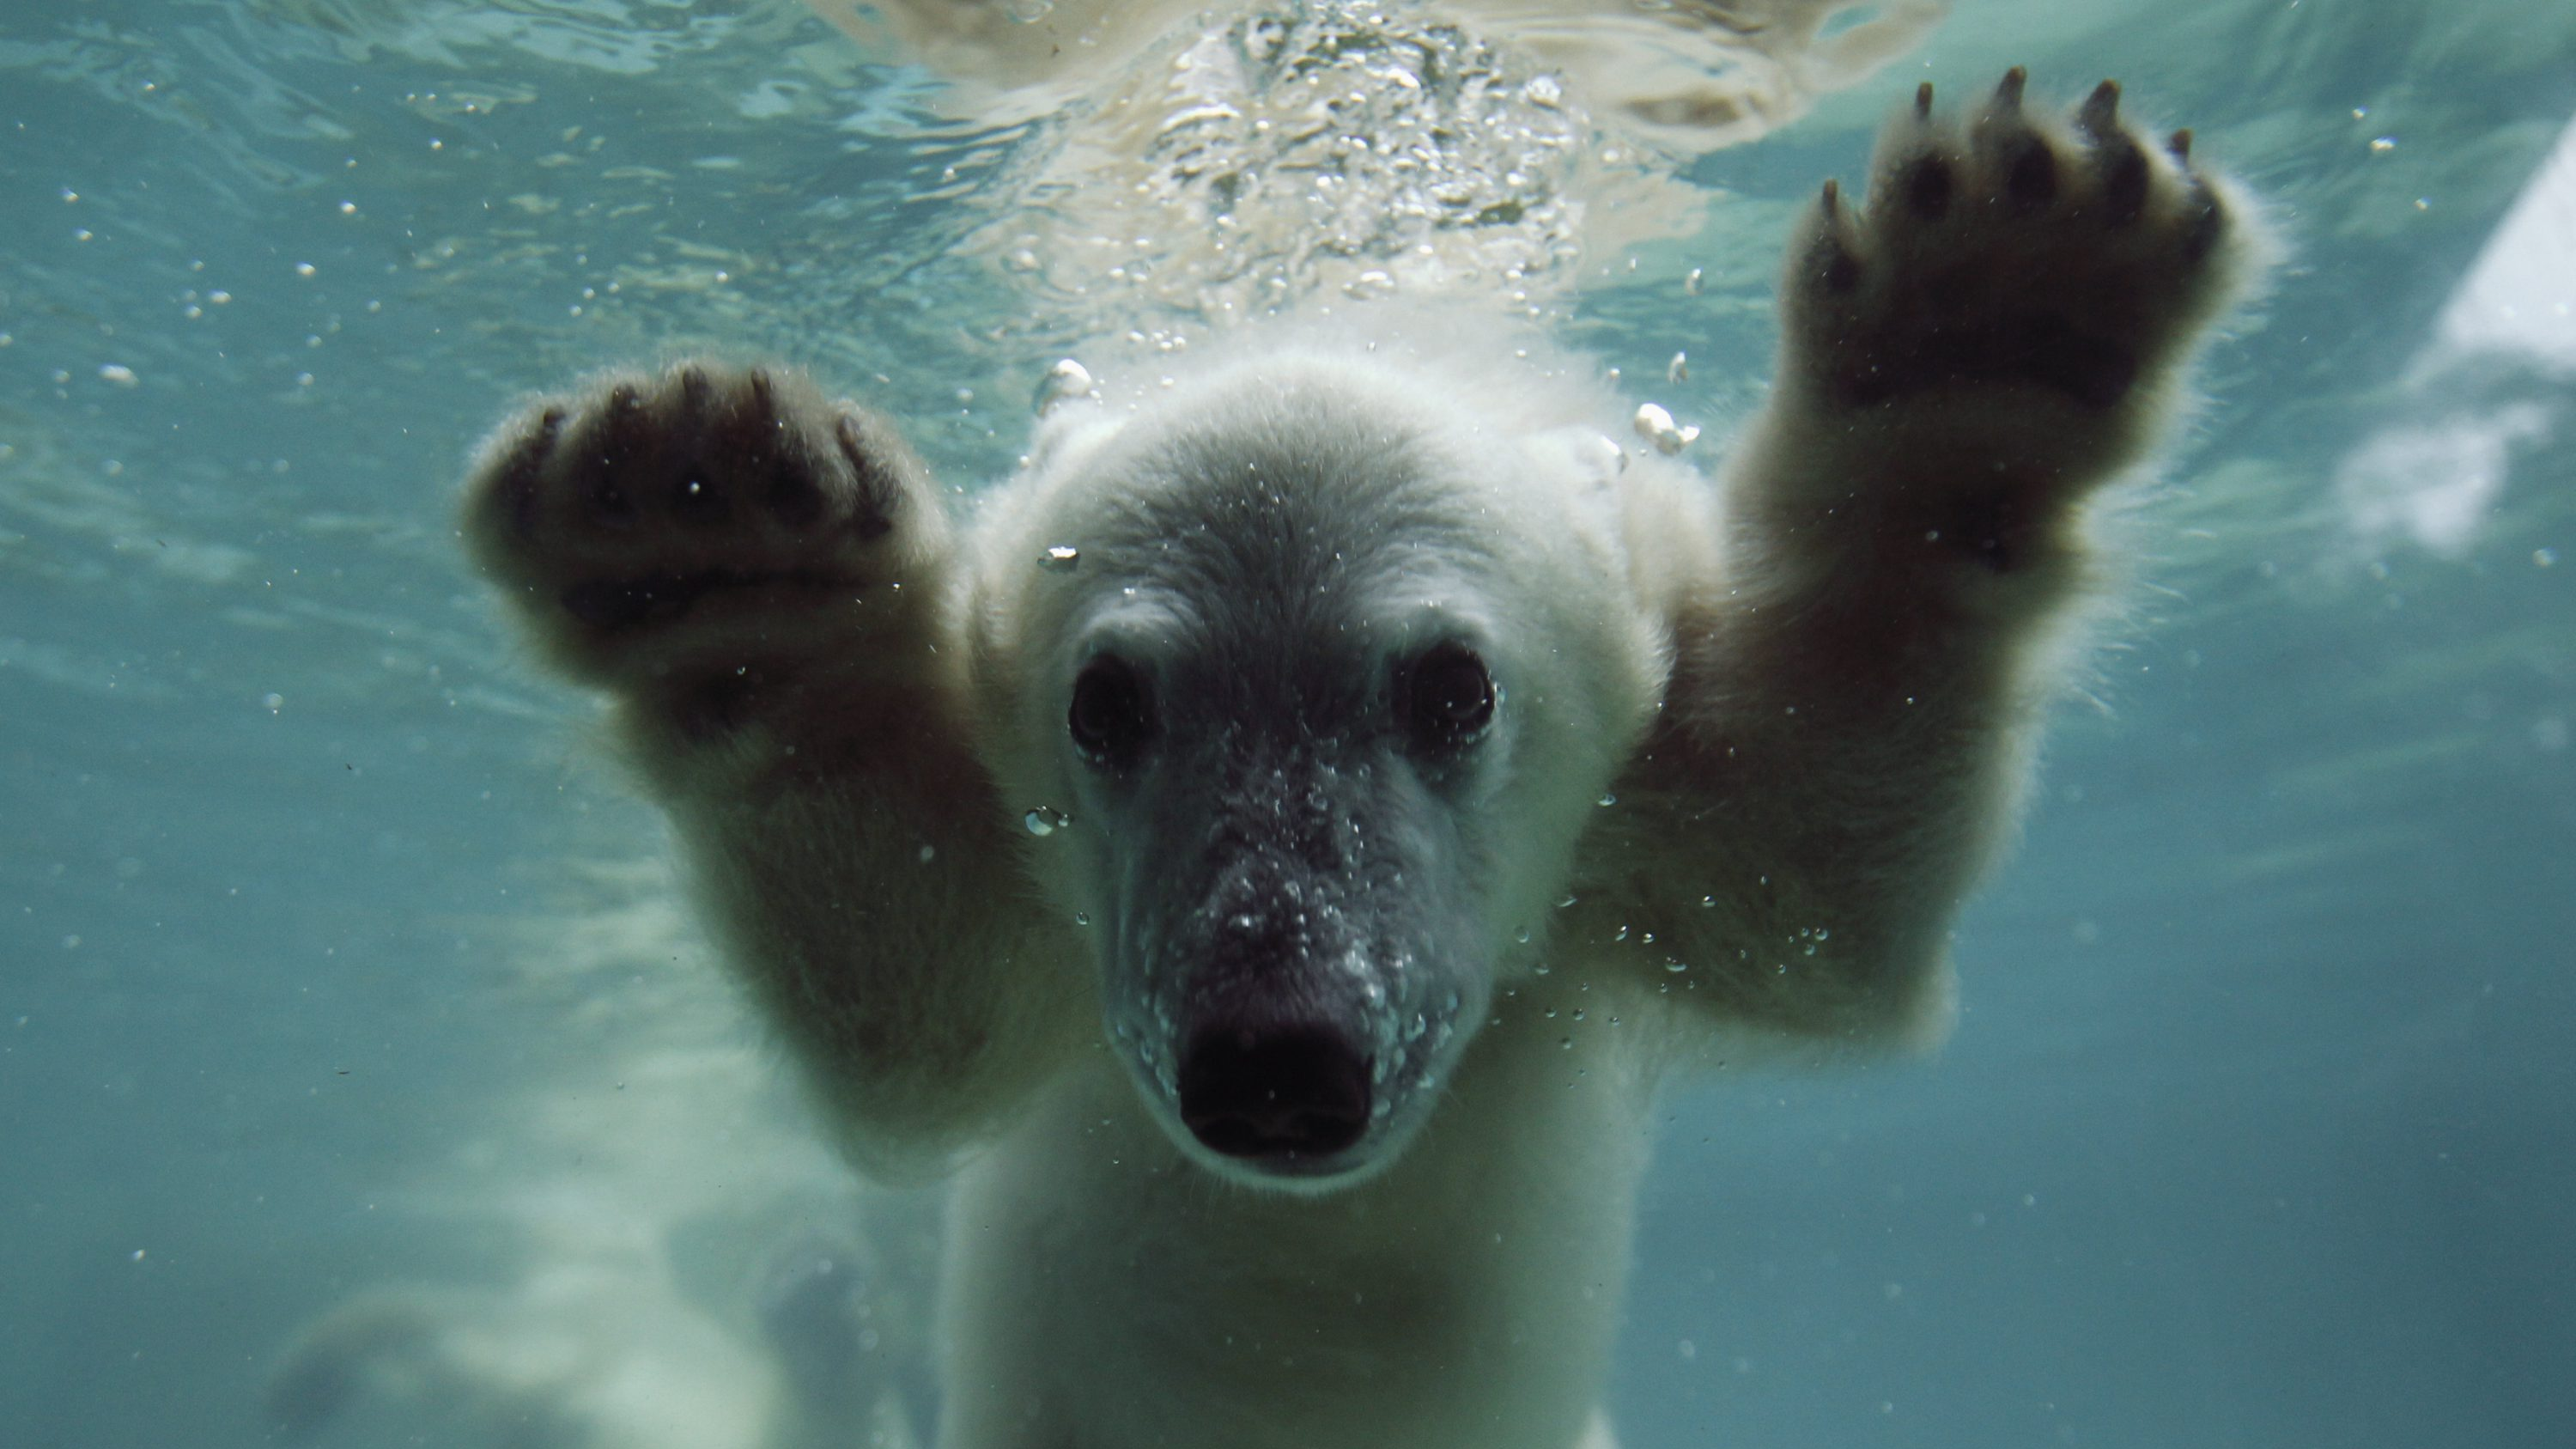 Anori, the polar bear cub, swims in her enclosure at the zoo in Wuppertal June 6, 2012. Anori was born on January 4, 2012.